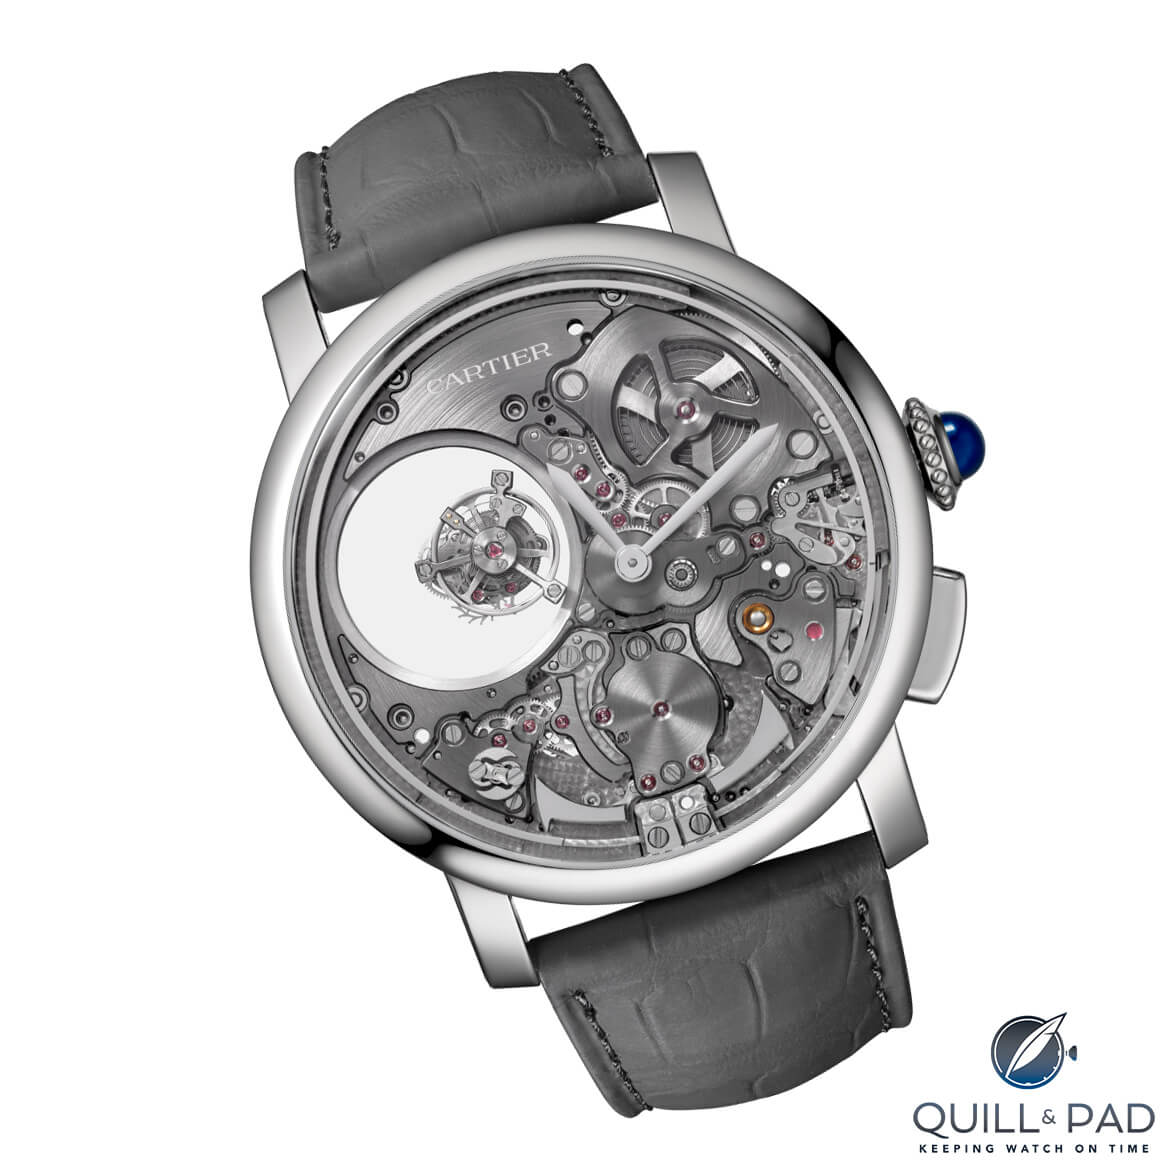 Cartier Rotonde de Cartier Minute Repeater Mysterious Double Tourbillon